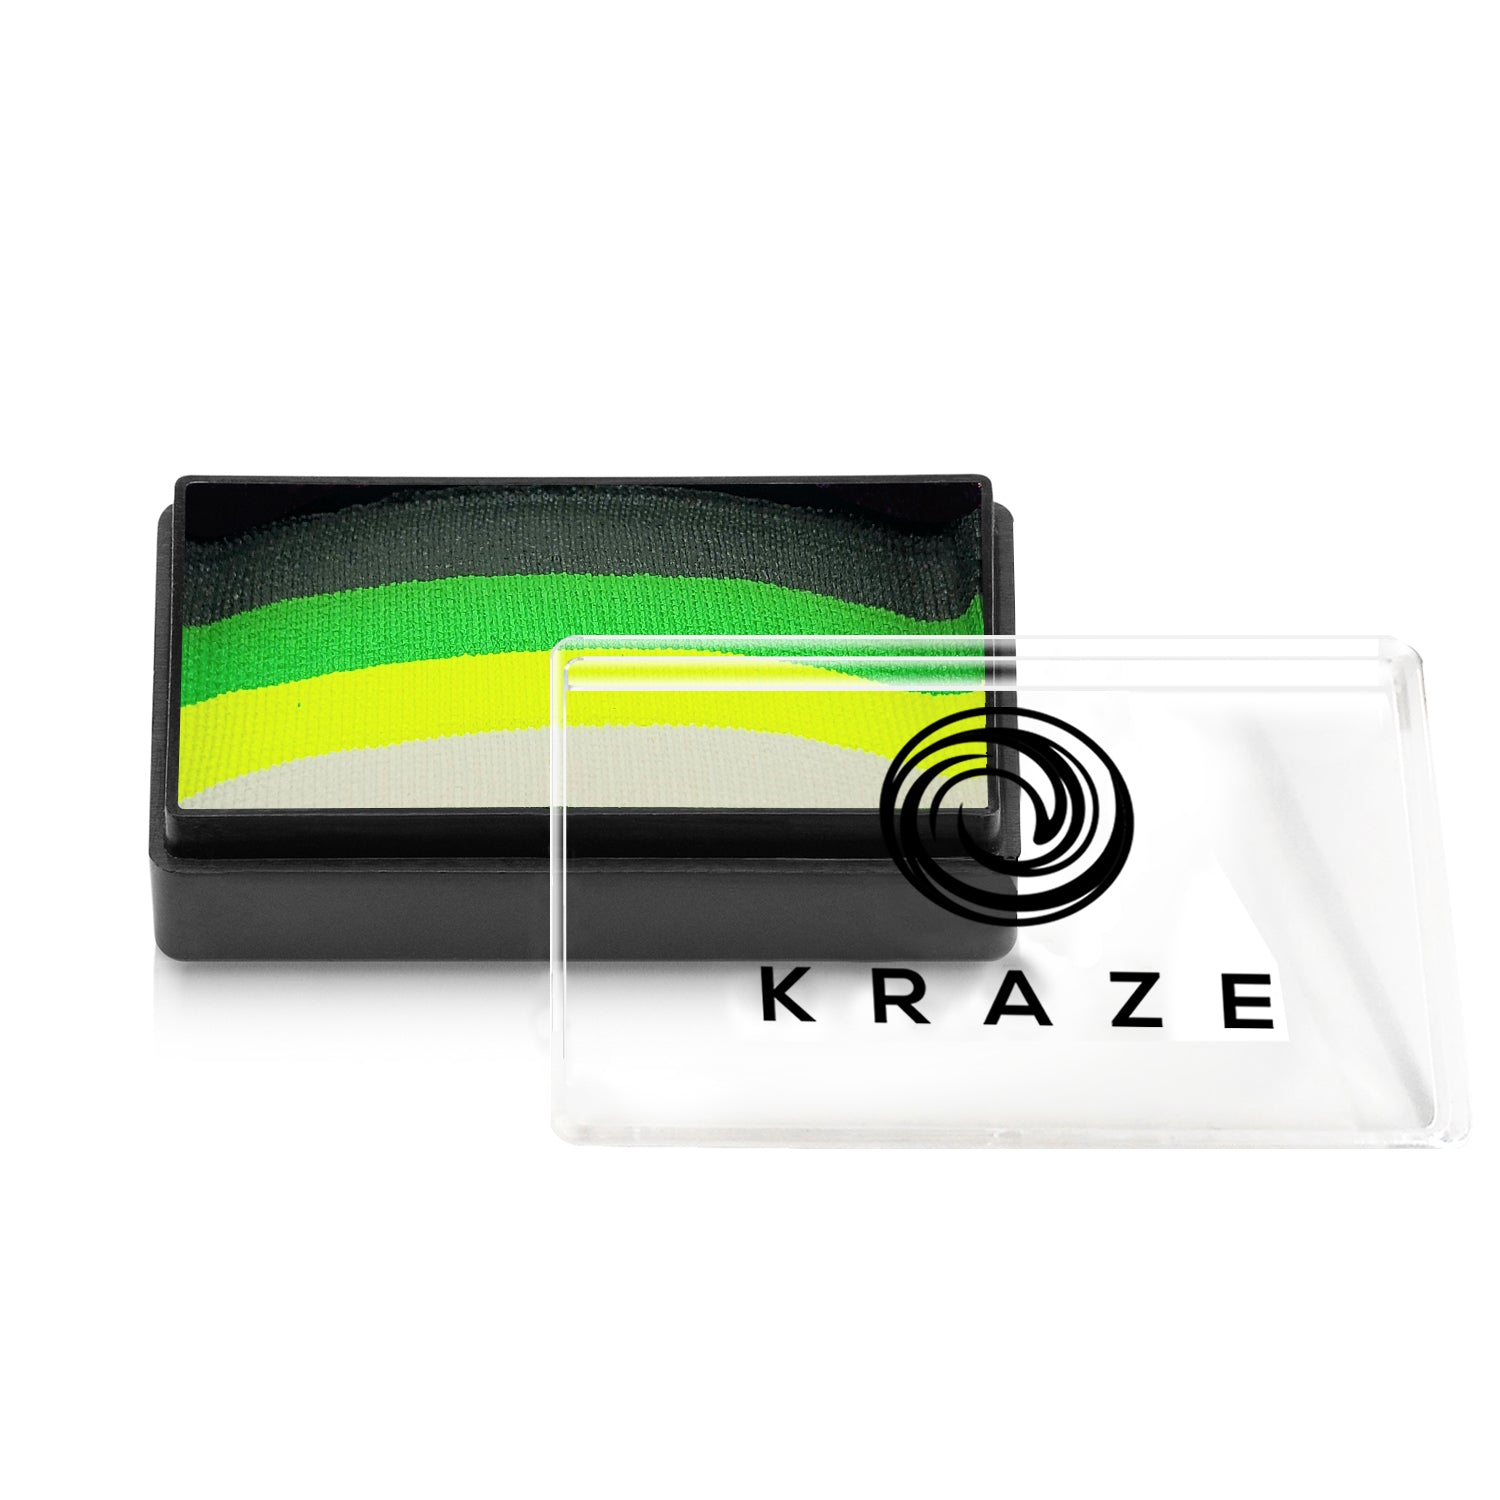 Kraze Dome Stroke - Meadow (25 gm)